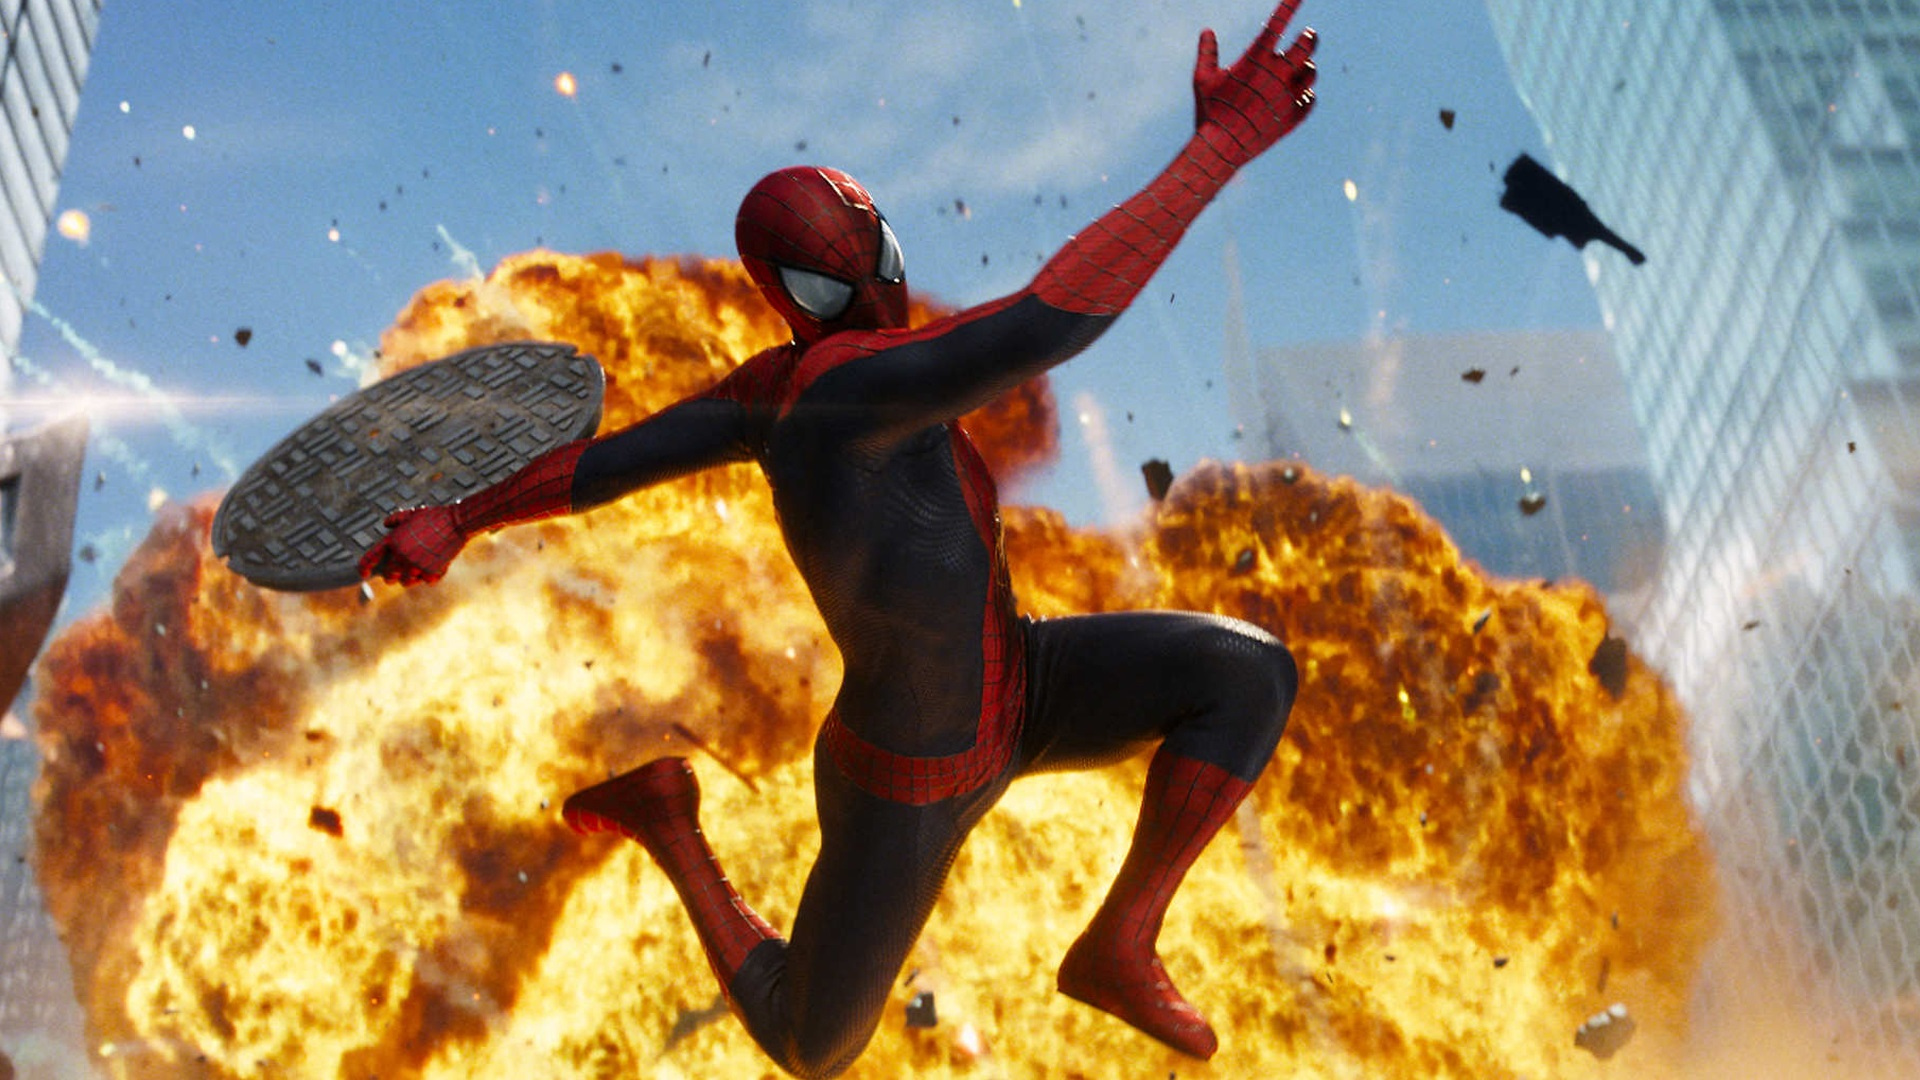 """The Amazing Spider-Man 2"" (2014) - Box Office Preview (We Live Film)"